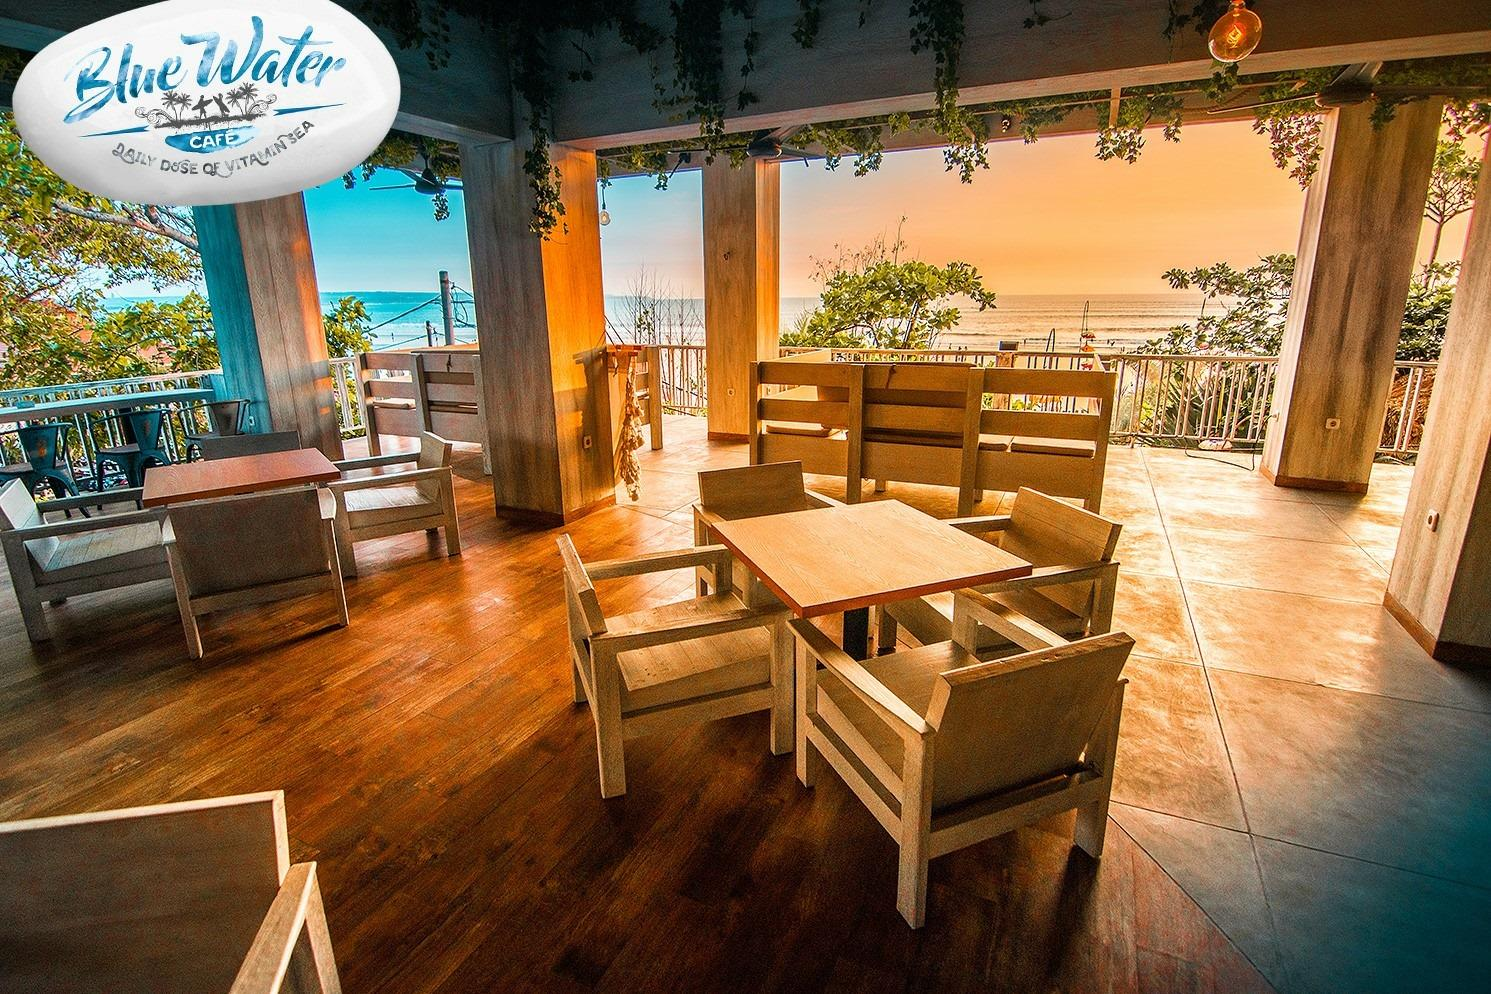 Bluewater Cafe & Beach House